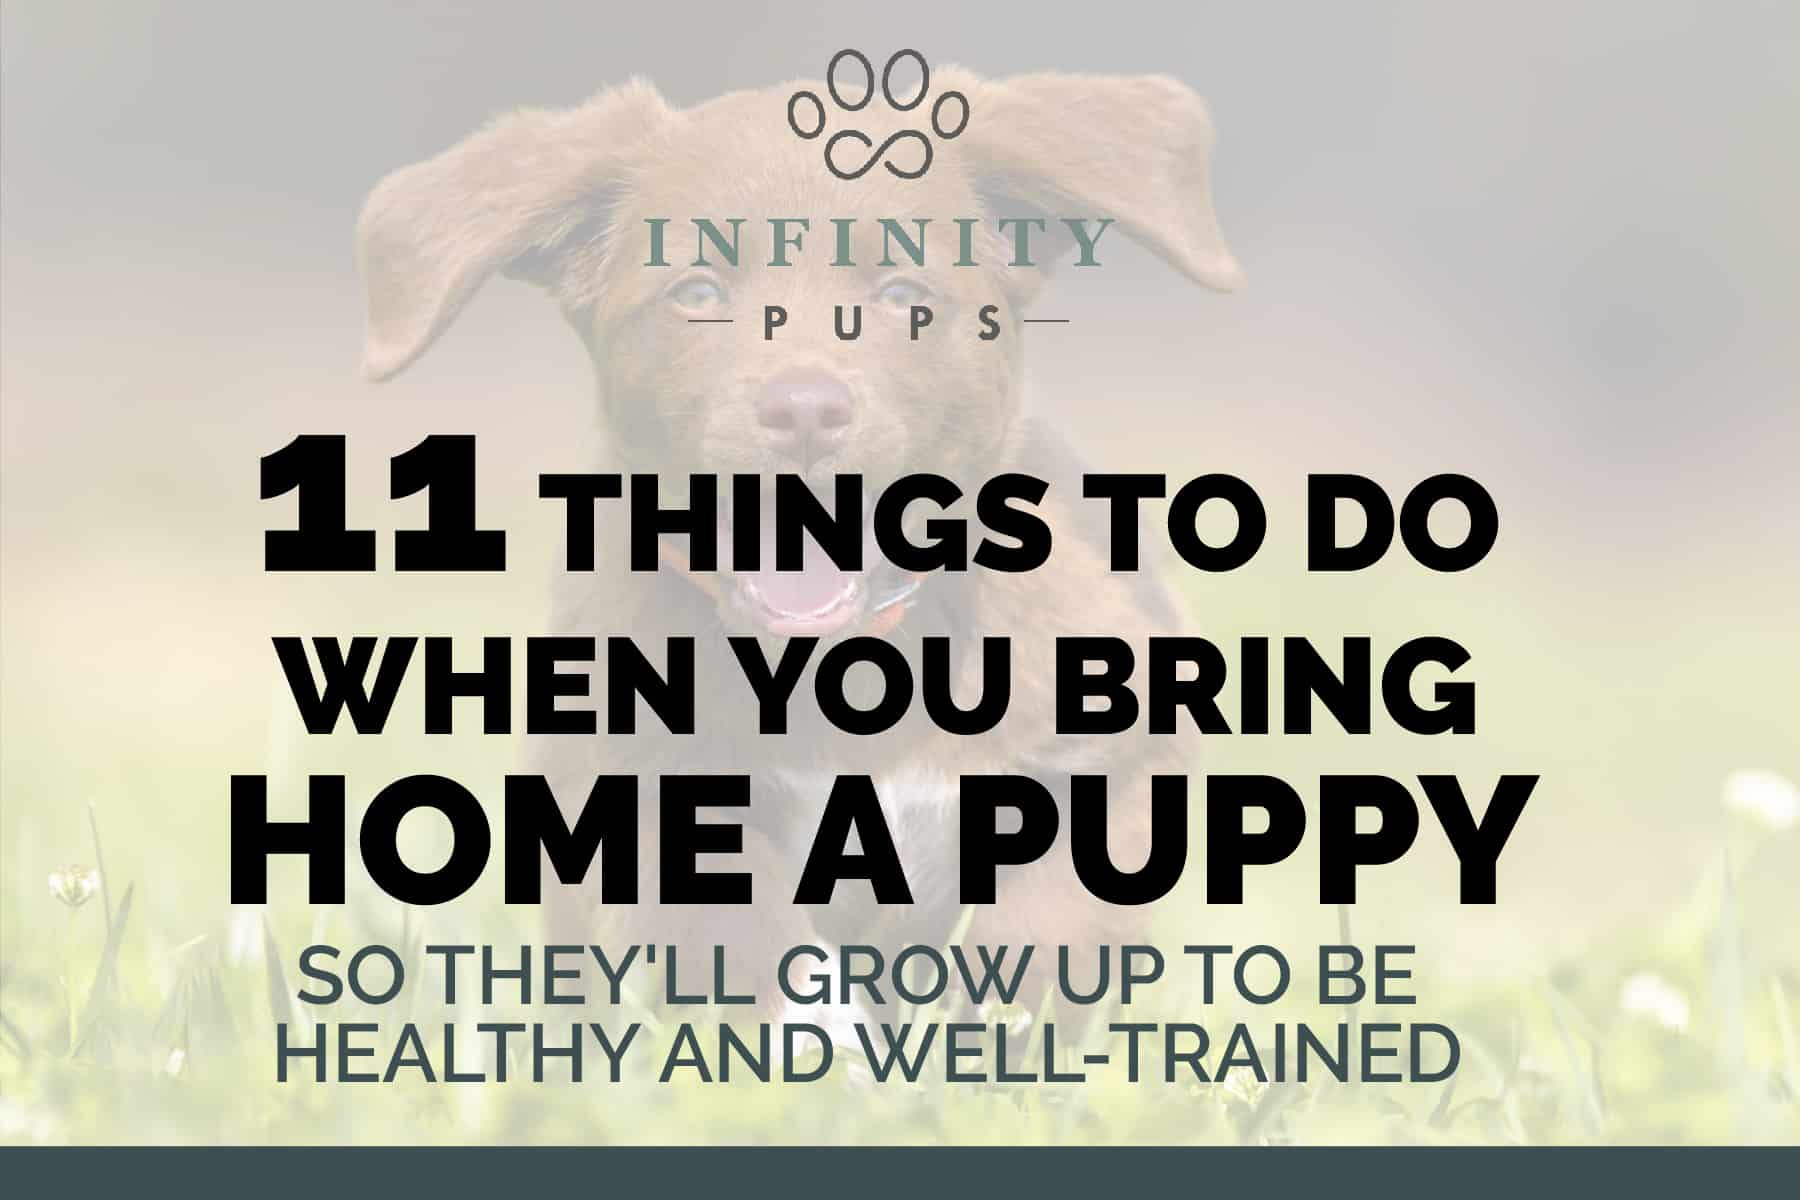 11 Things To Do When You Bring Home A Puppy (so they'll be healthy & well-trained) 1